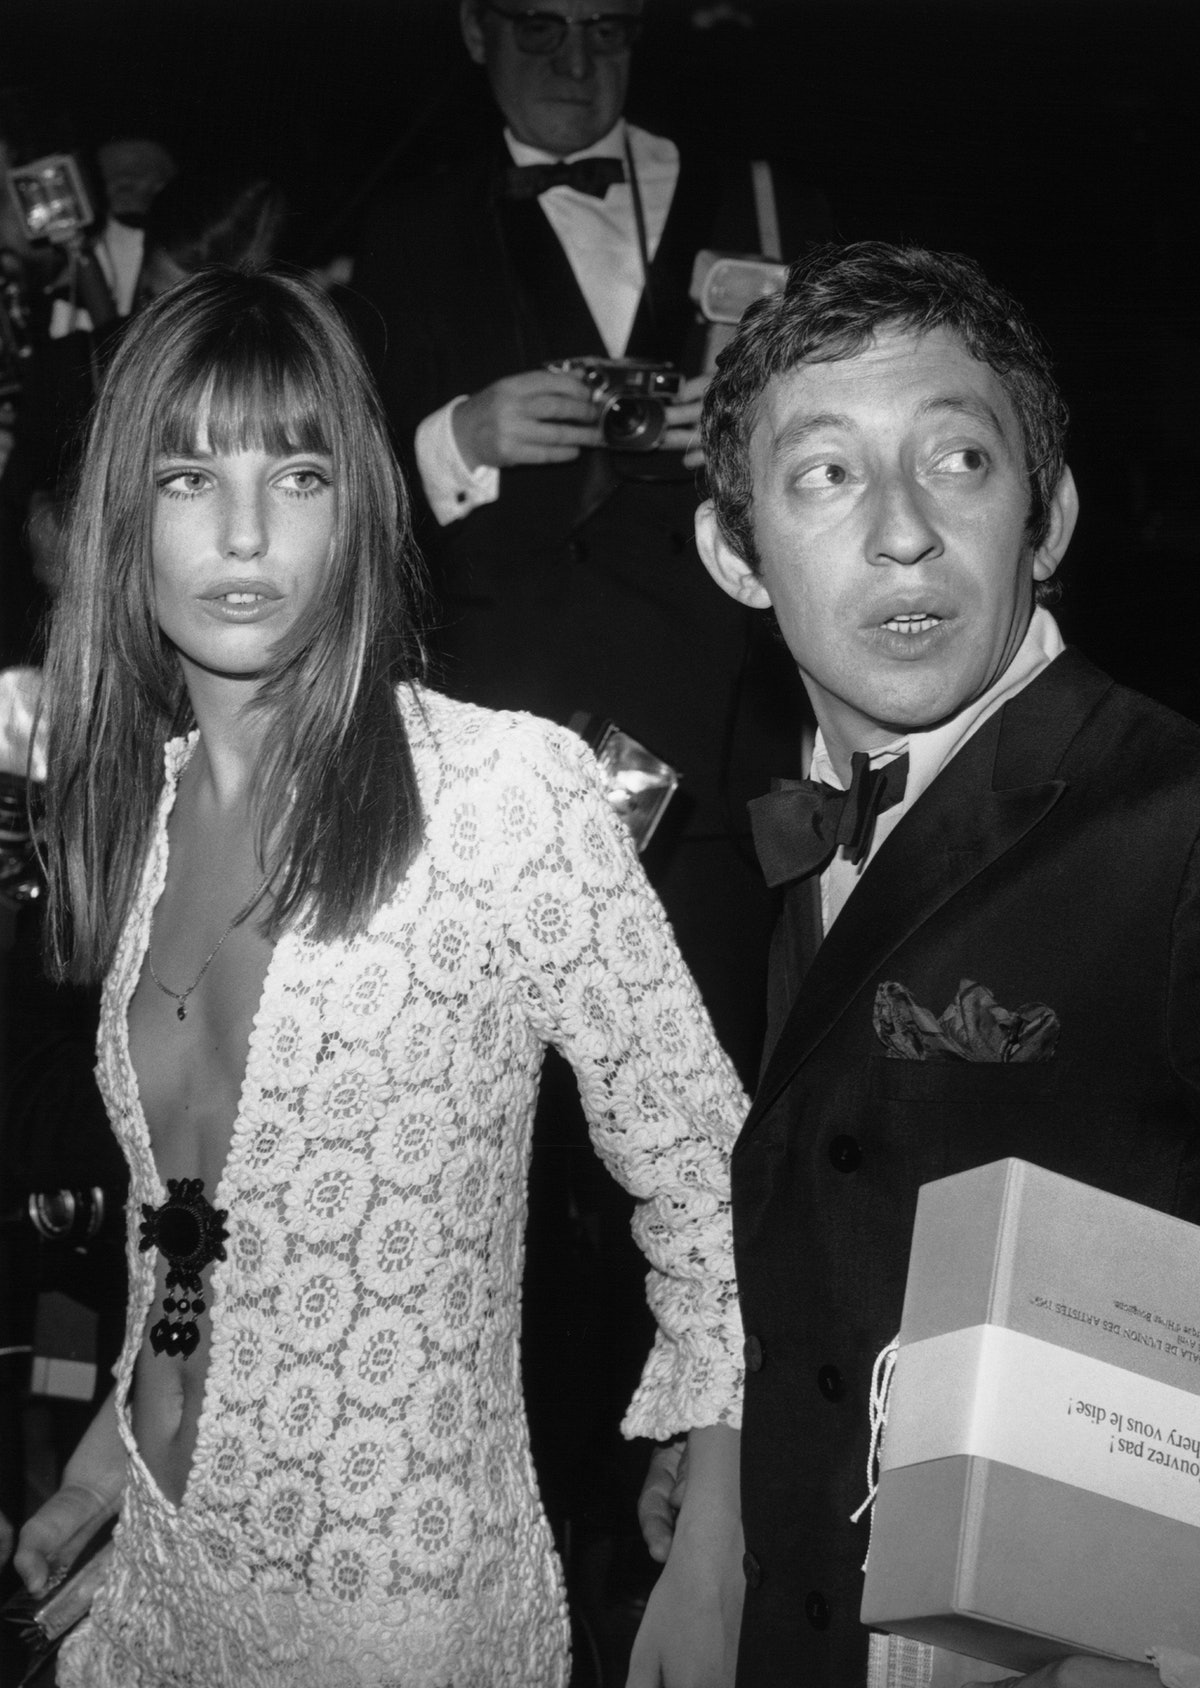 FRANCE - APRIL 25:  Serge GAINSBOURG and Jane BIRKIN arriving at the Artists Union's Gala, Paris.  (...